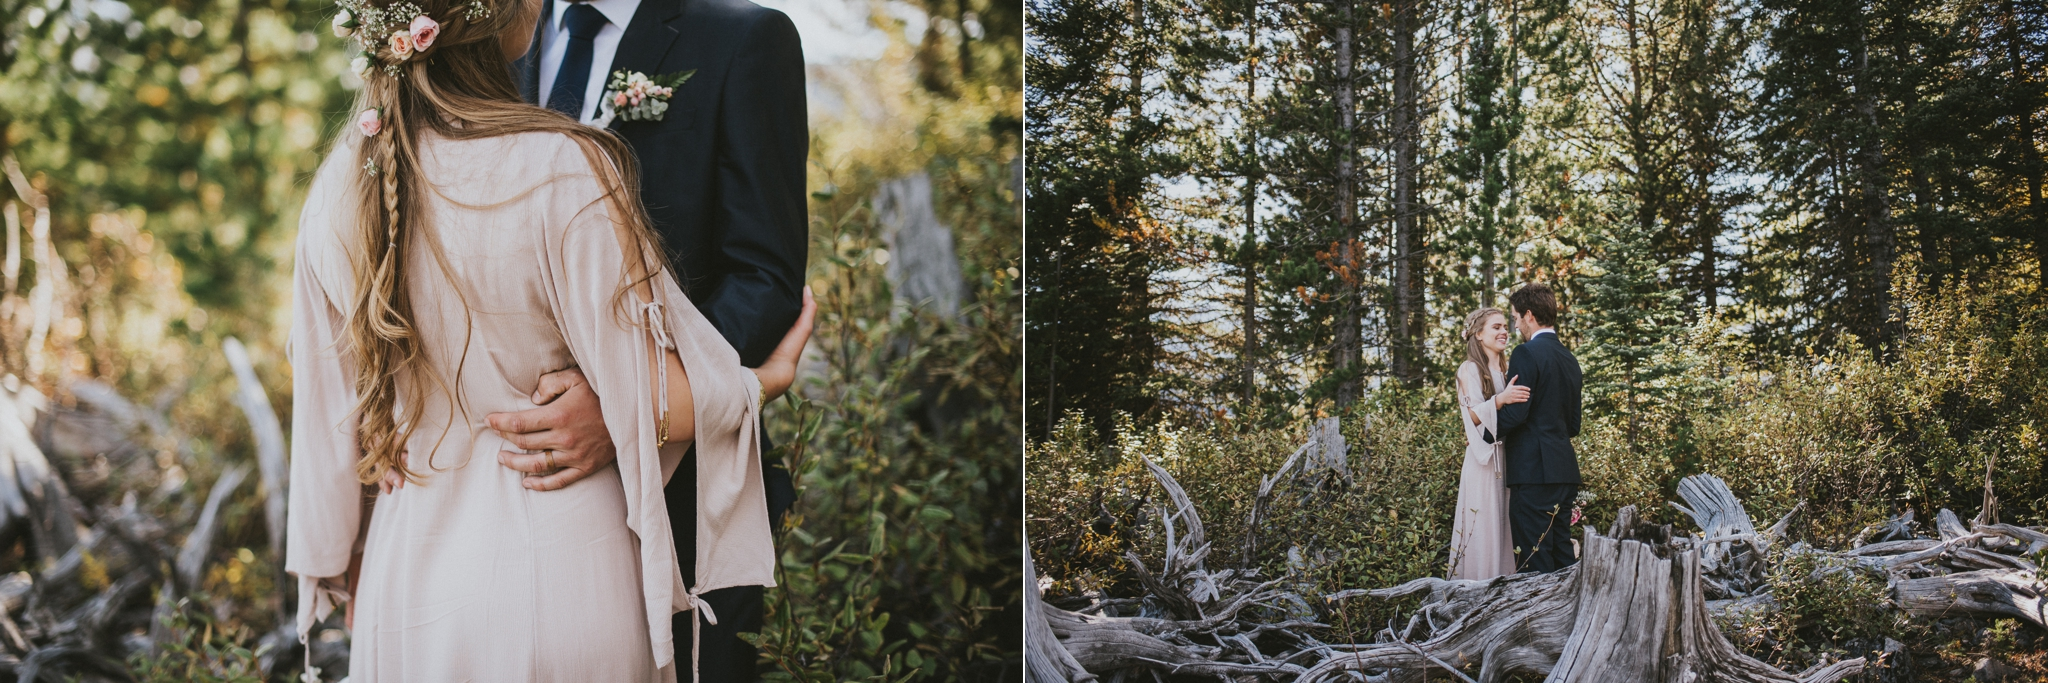 bride groom hug portrait kananaskis elopement